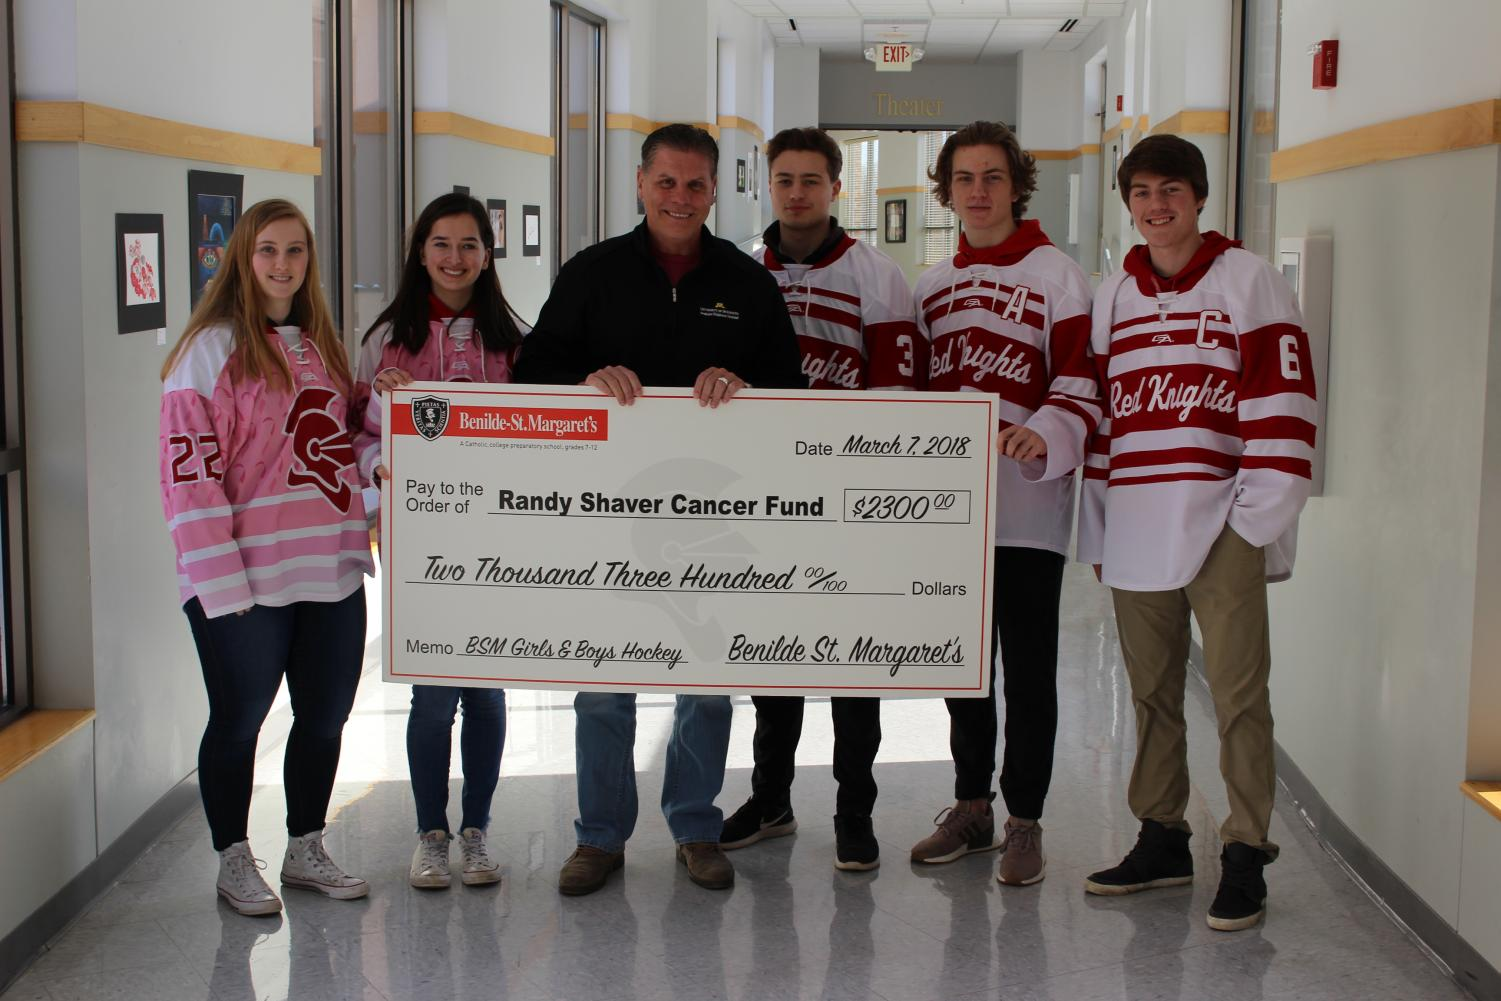 Hockey captains presented  Randy Shaver with a check for $2300. Both teams held  a fundraiser this past season in to support the Randy Shaver Cancer Fund.